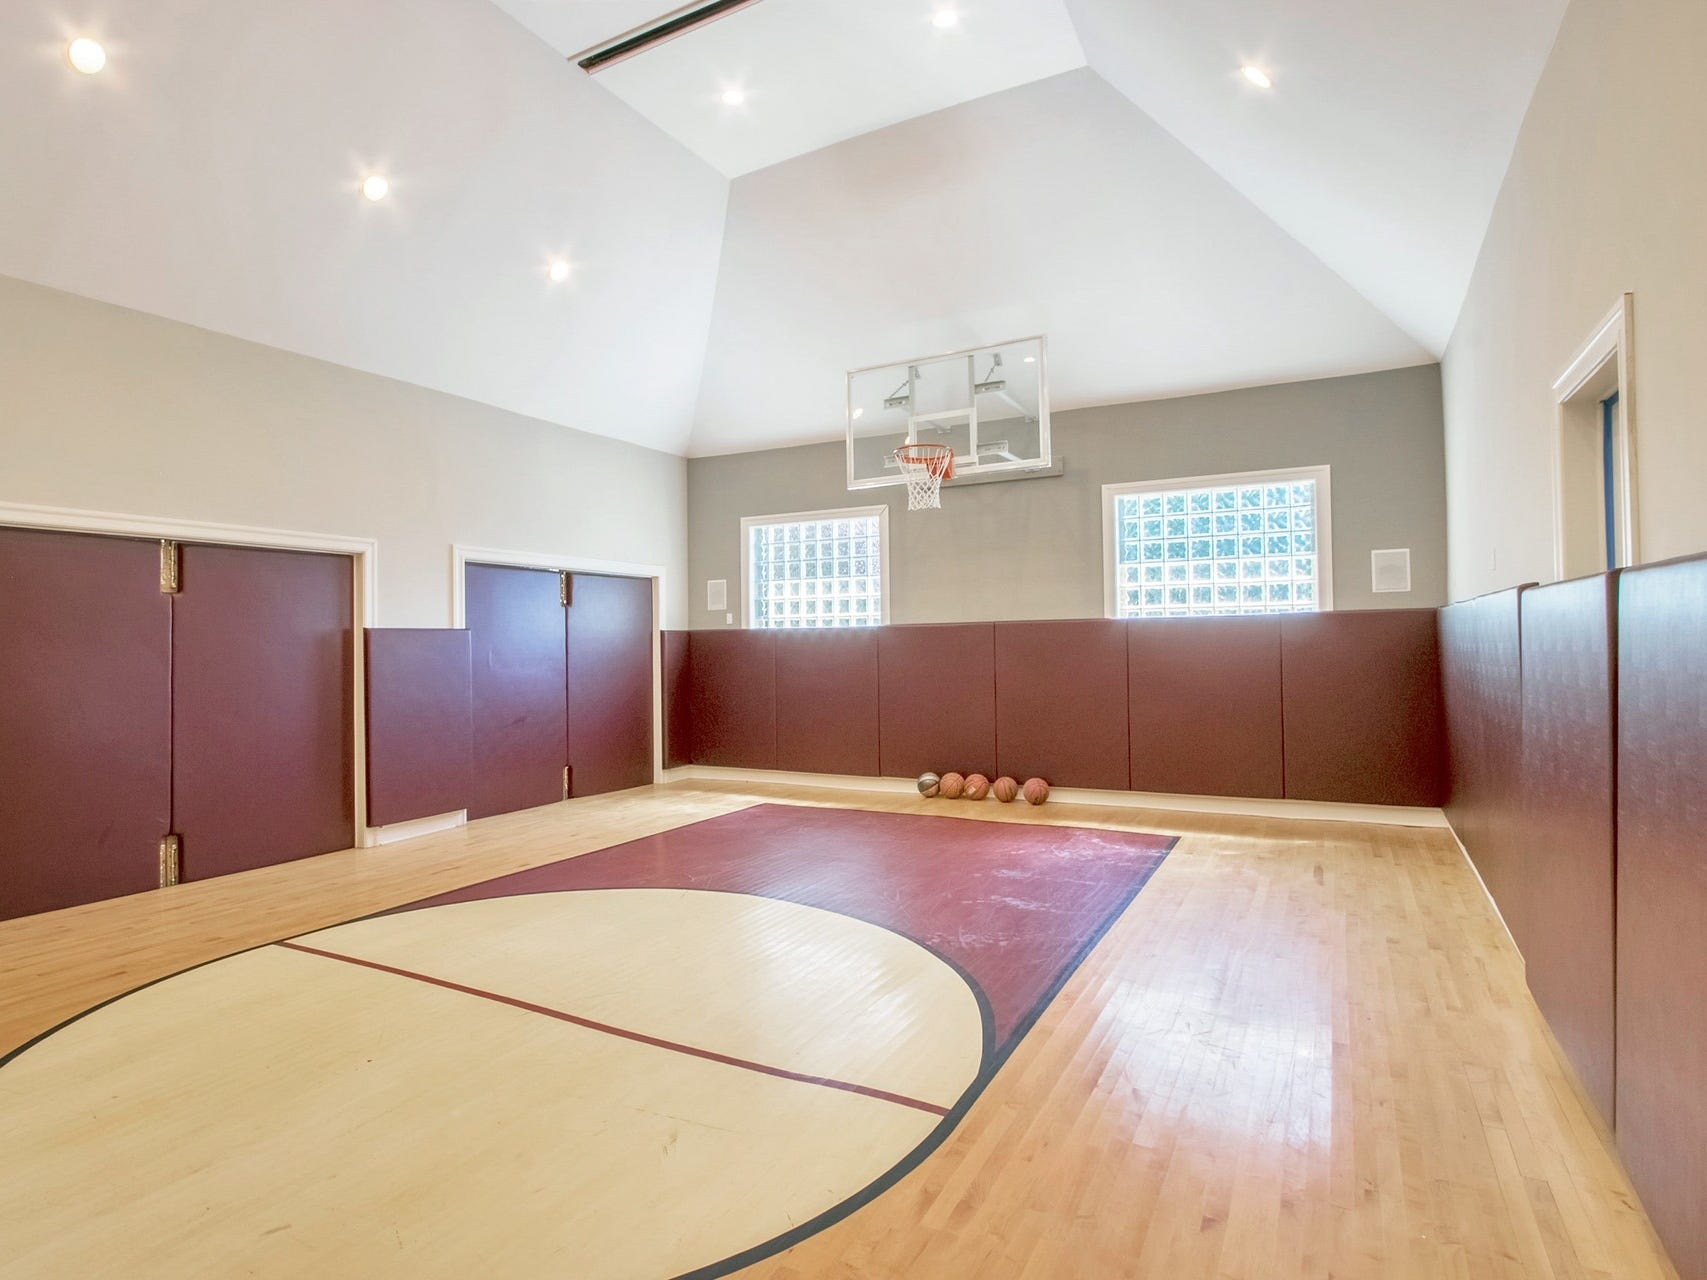 The basketball court also doubles as a gaming room with a drop-down video screen and surround sound.